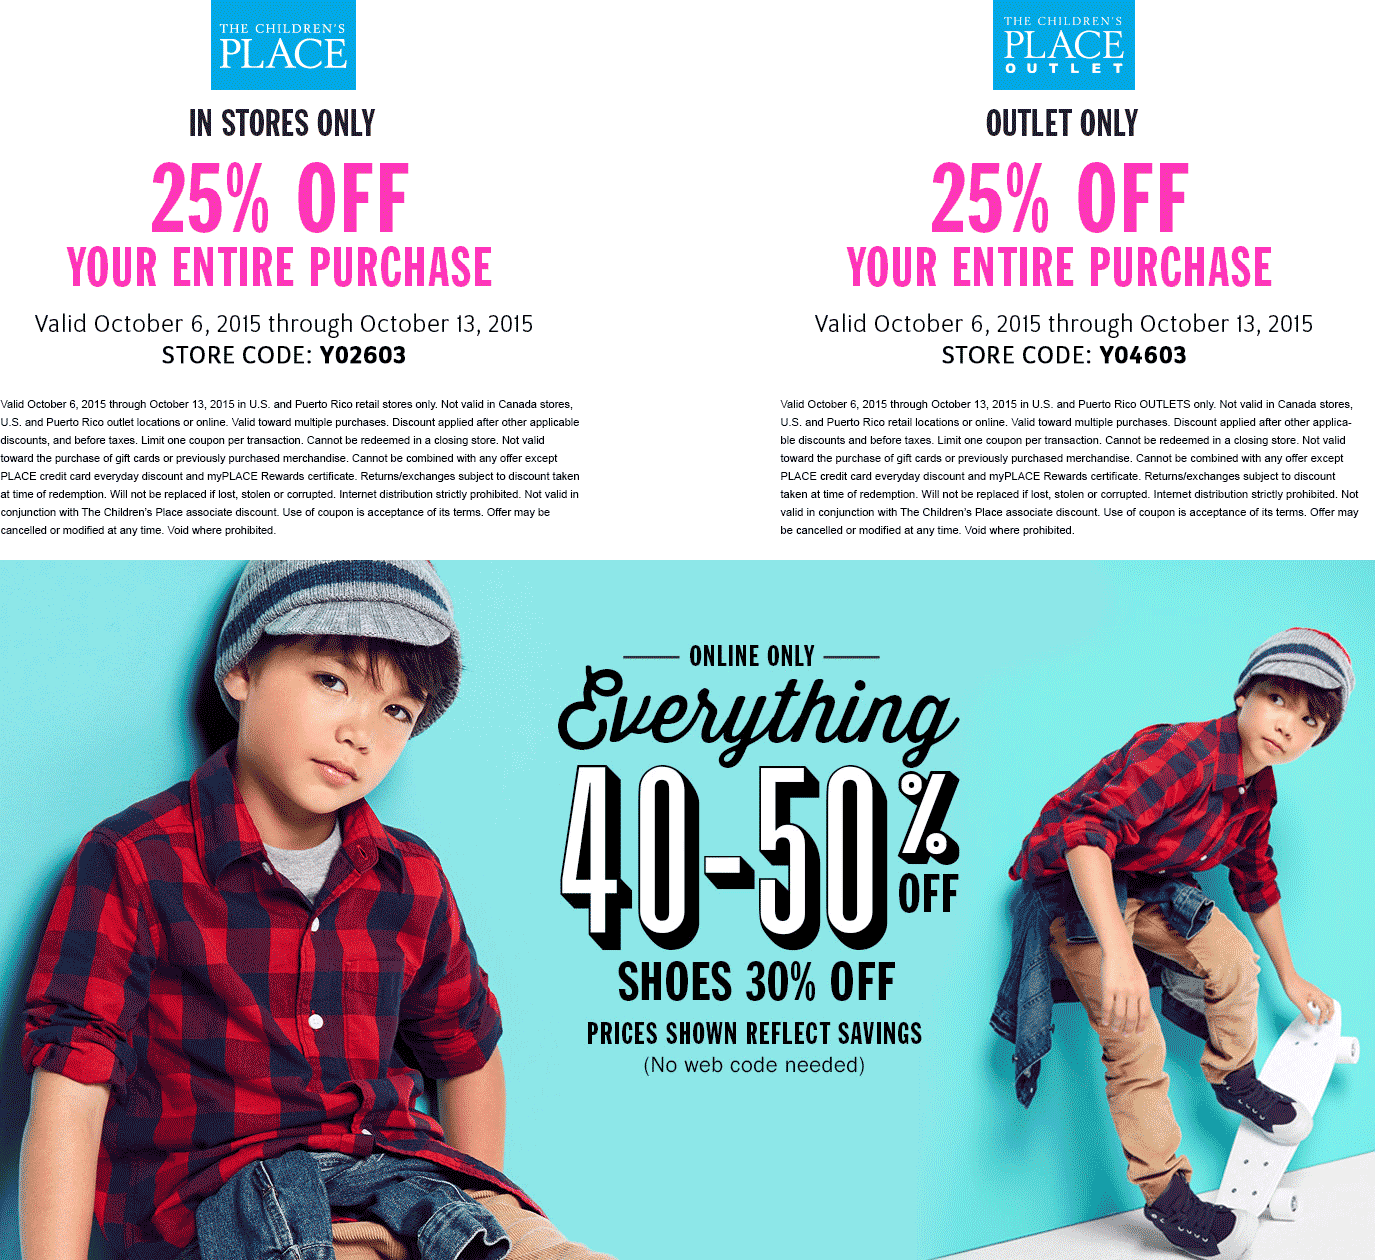 The Childrens Place Coupon November 2018 25% off at The Childrens Place & outlet locations, or 40-50% everything online